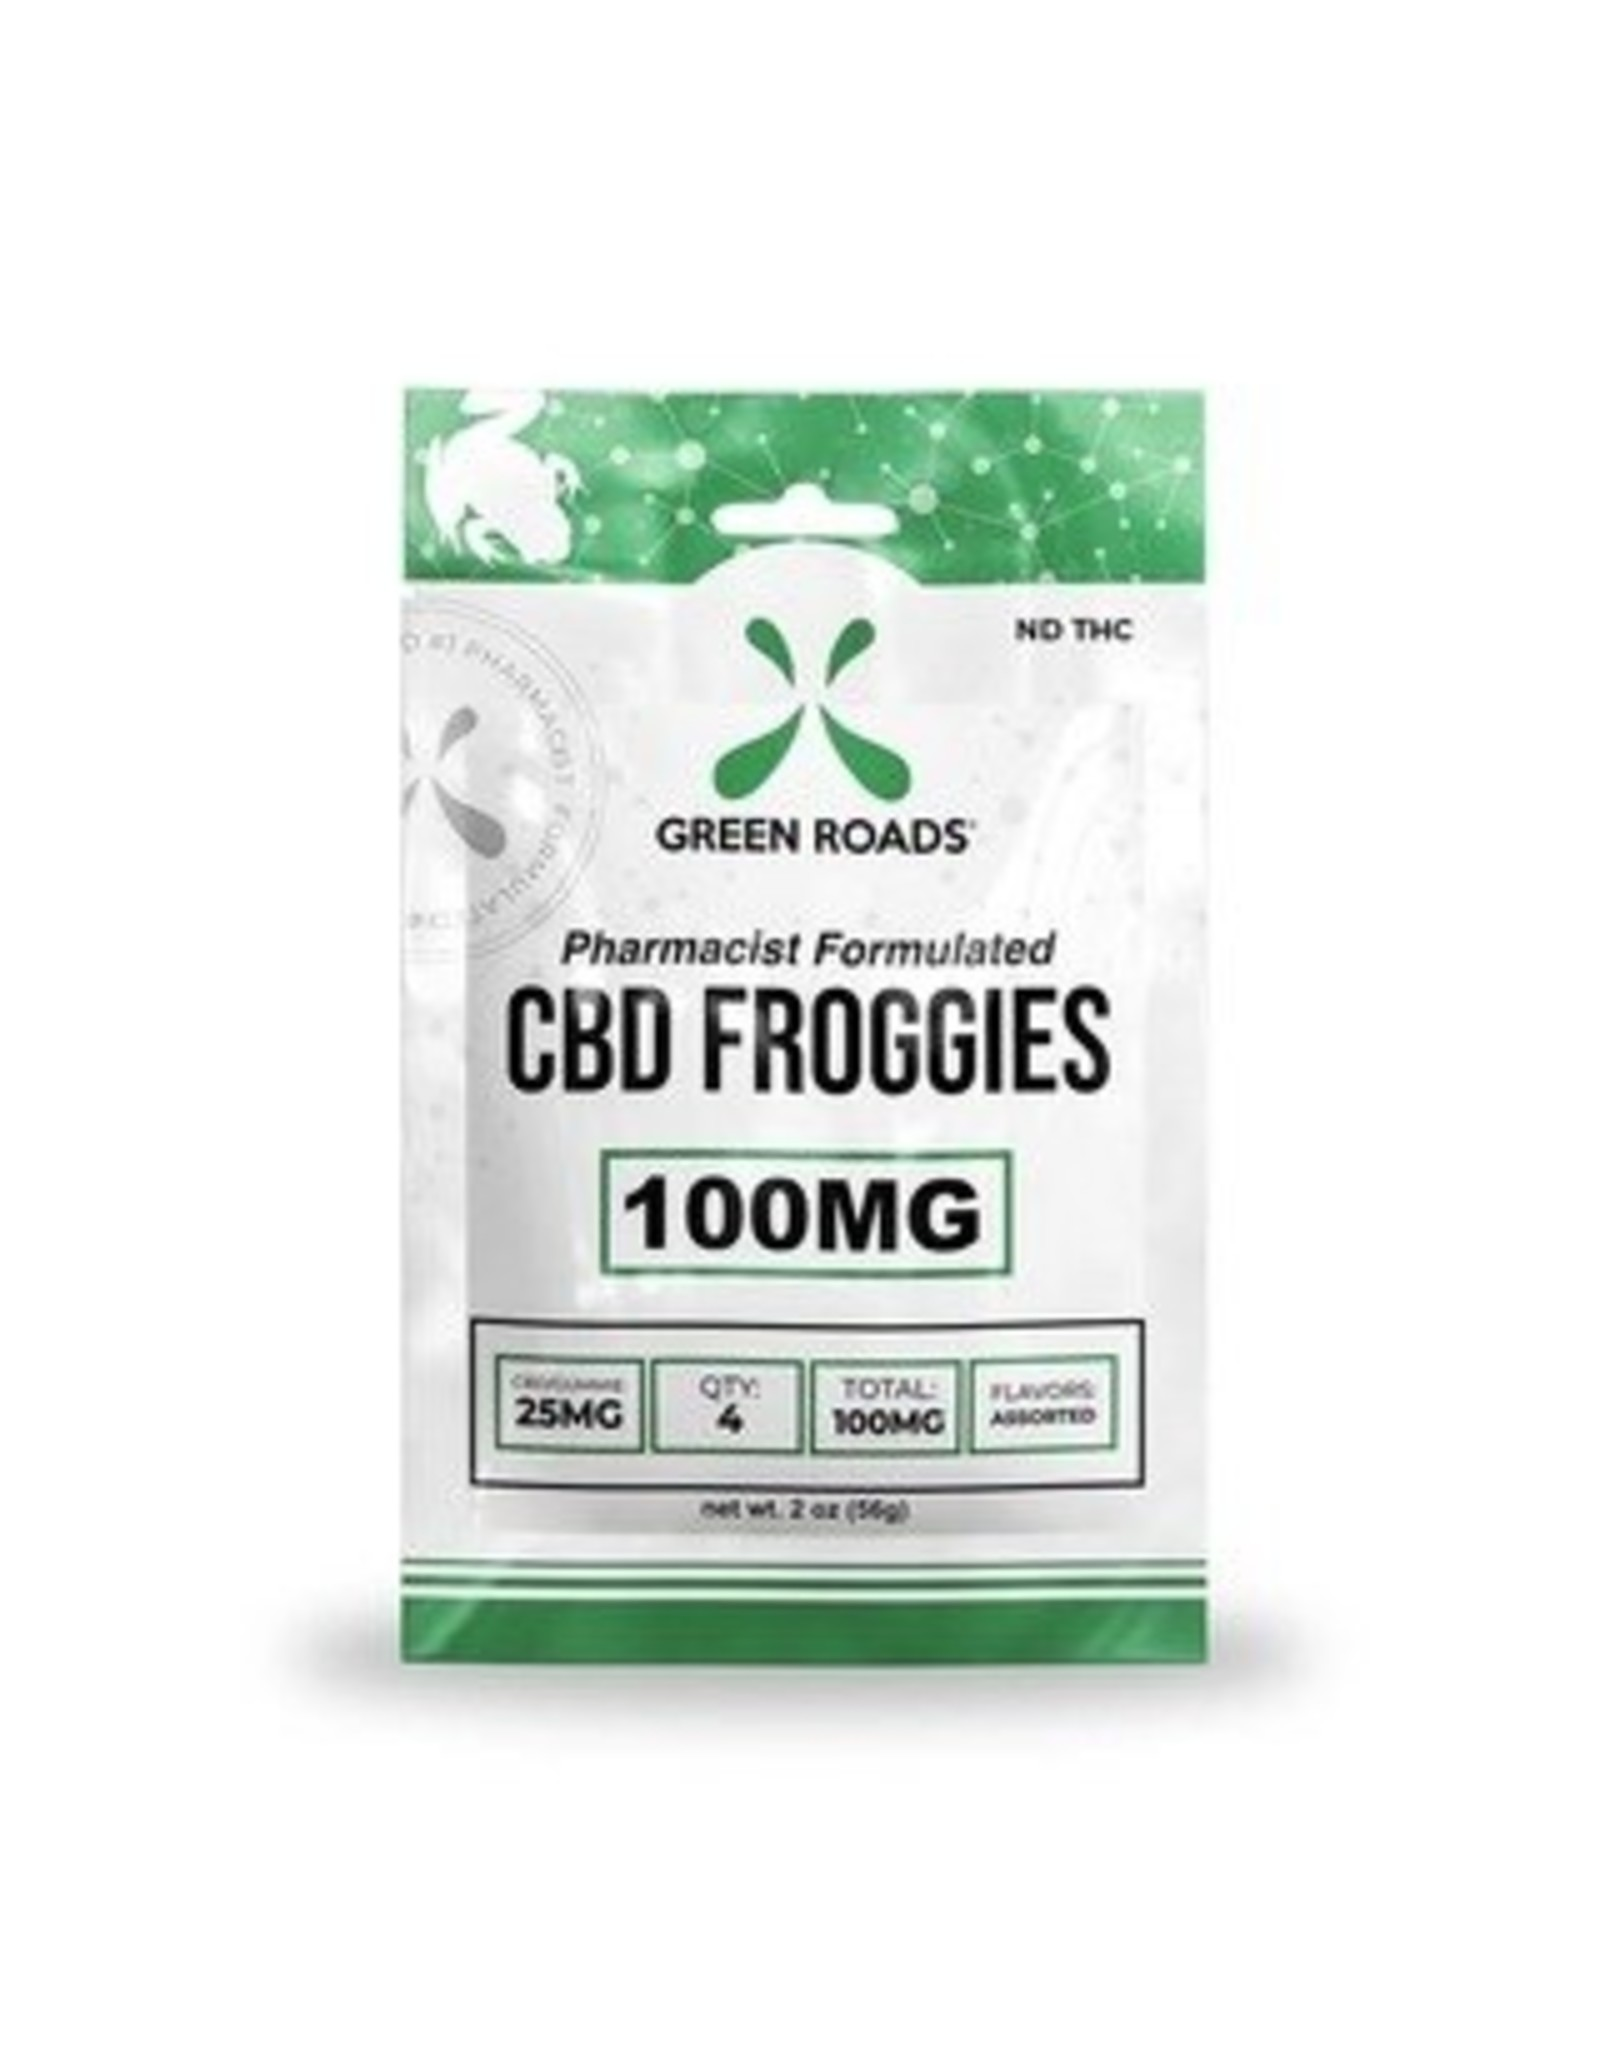 Green Roads Green Roads CBD froggies 100 mg sweet